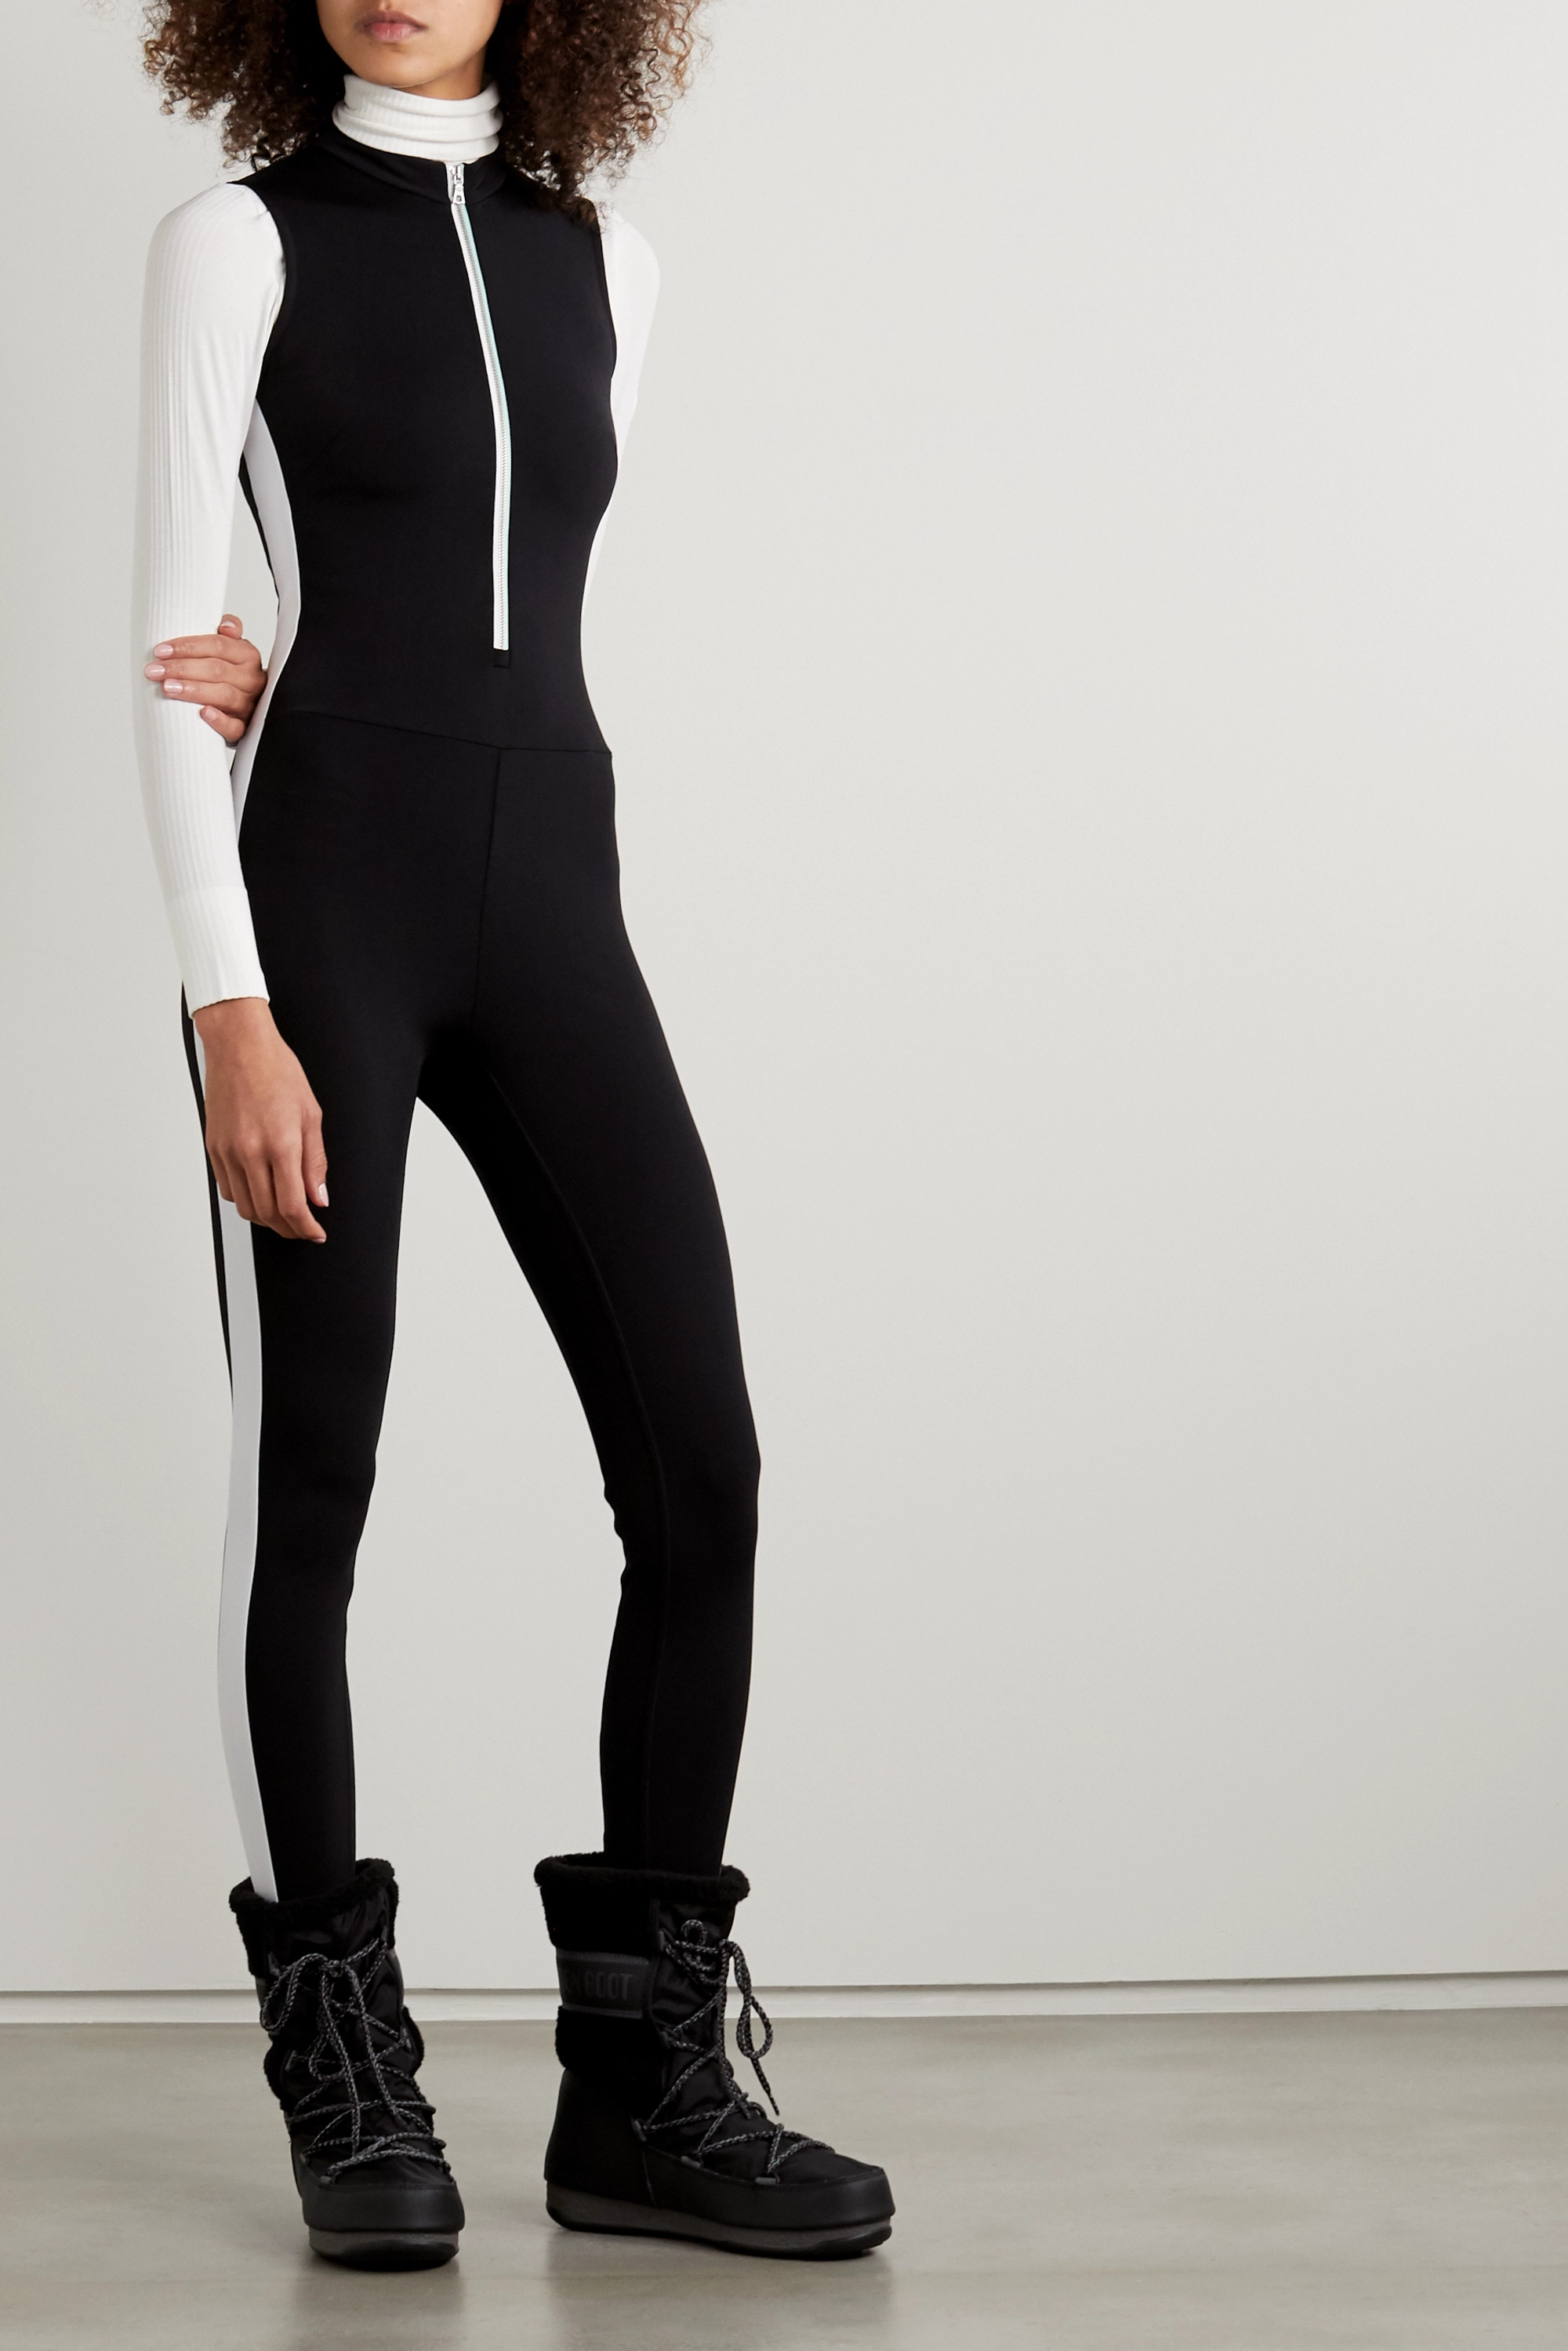 Vaara Dean Thermal striped stretch bodysuit